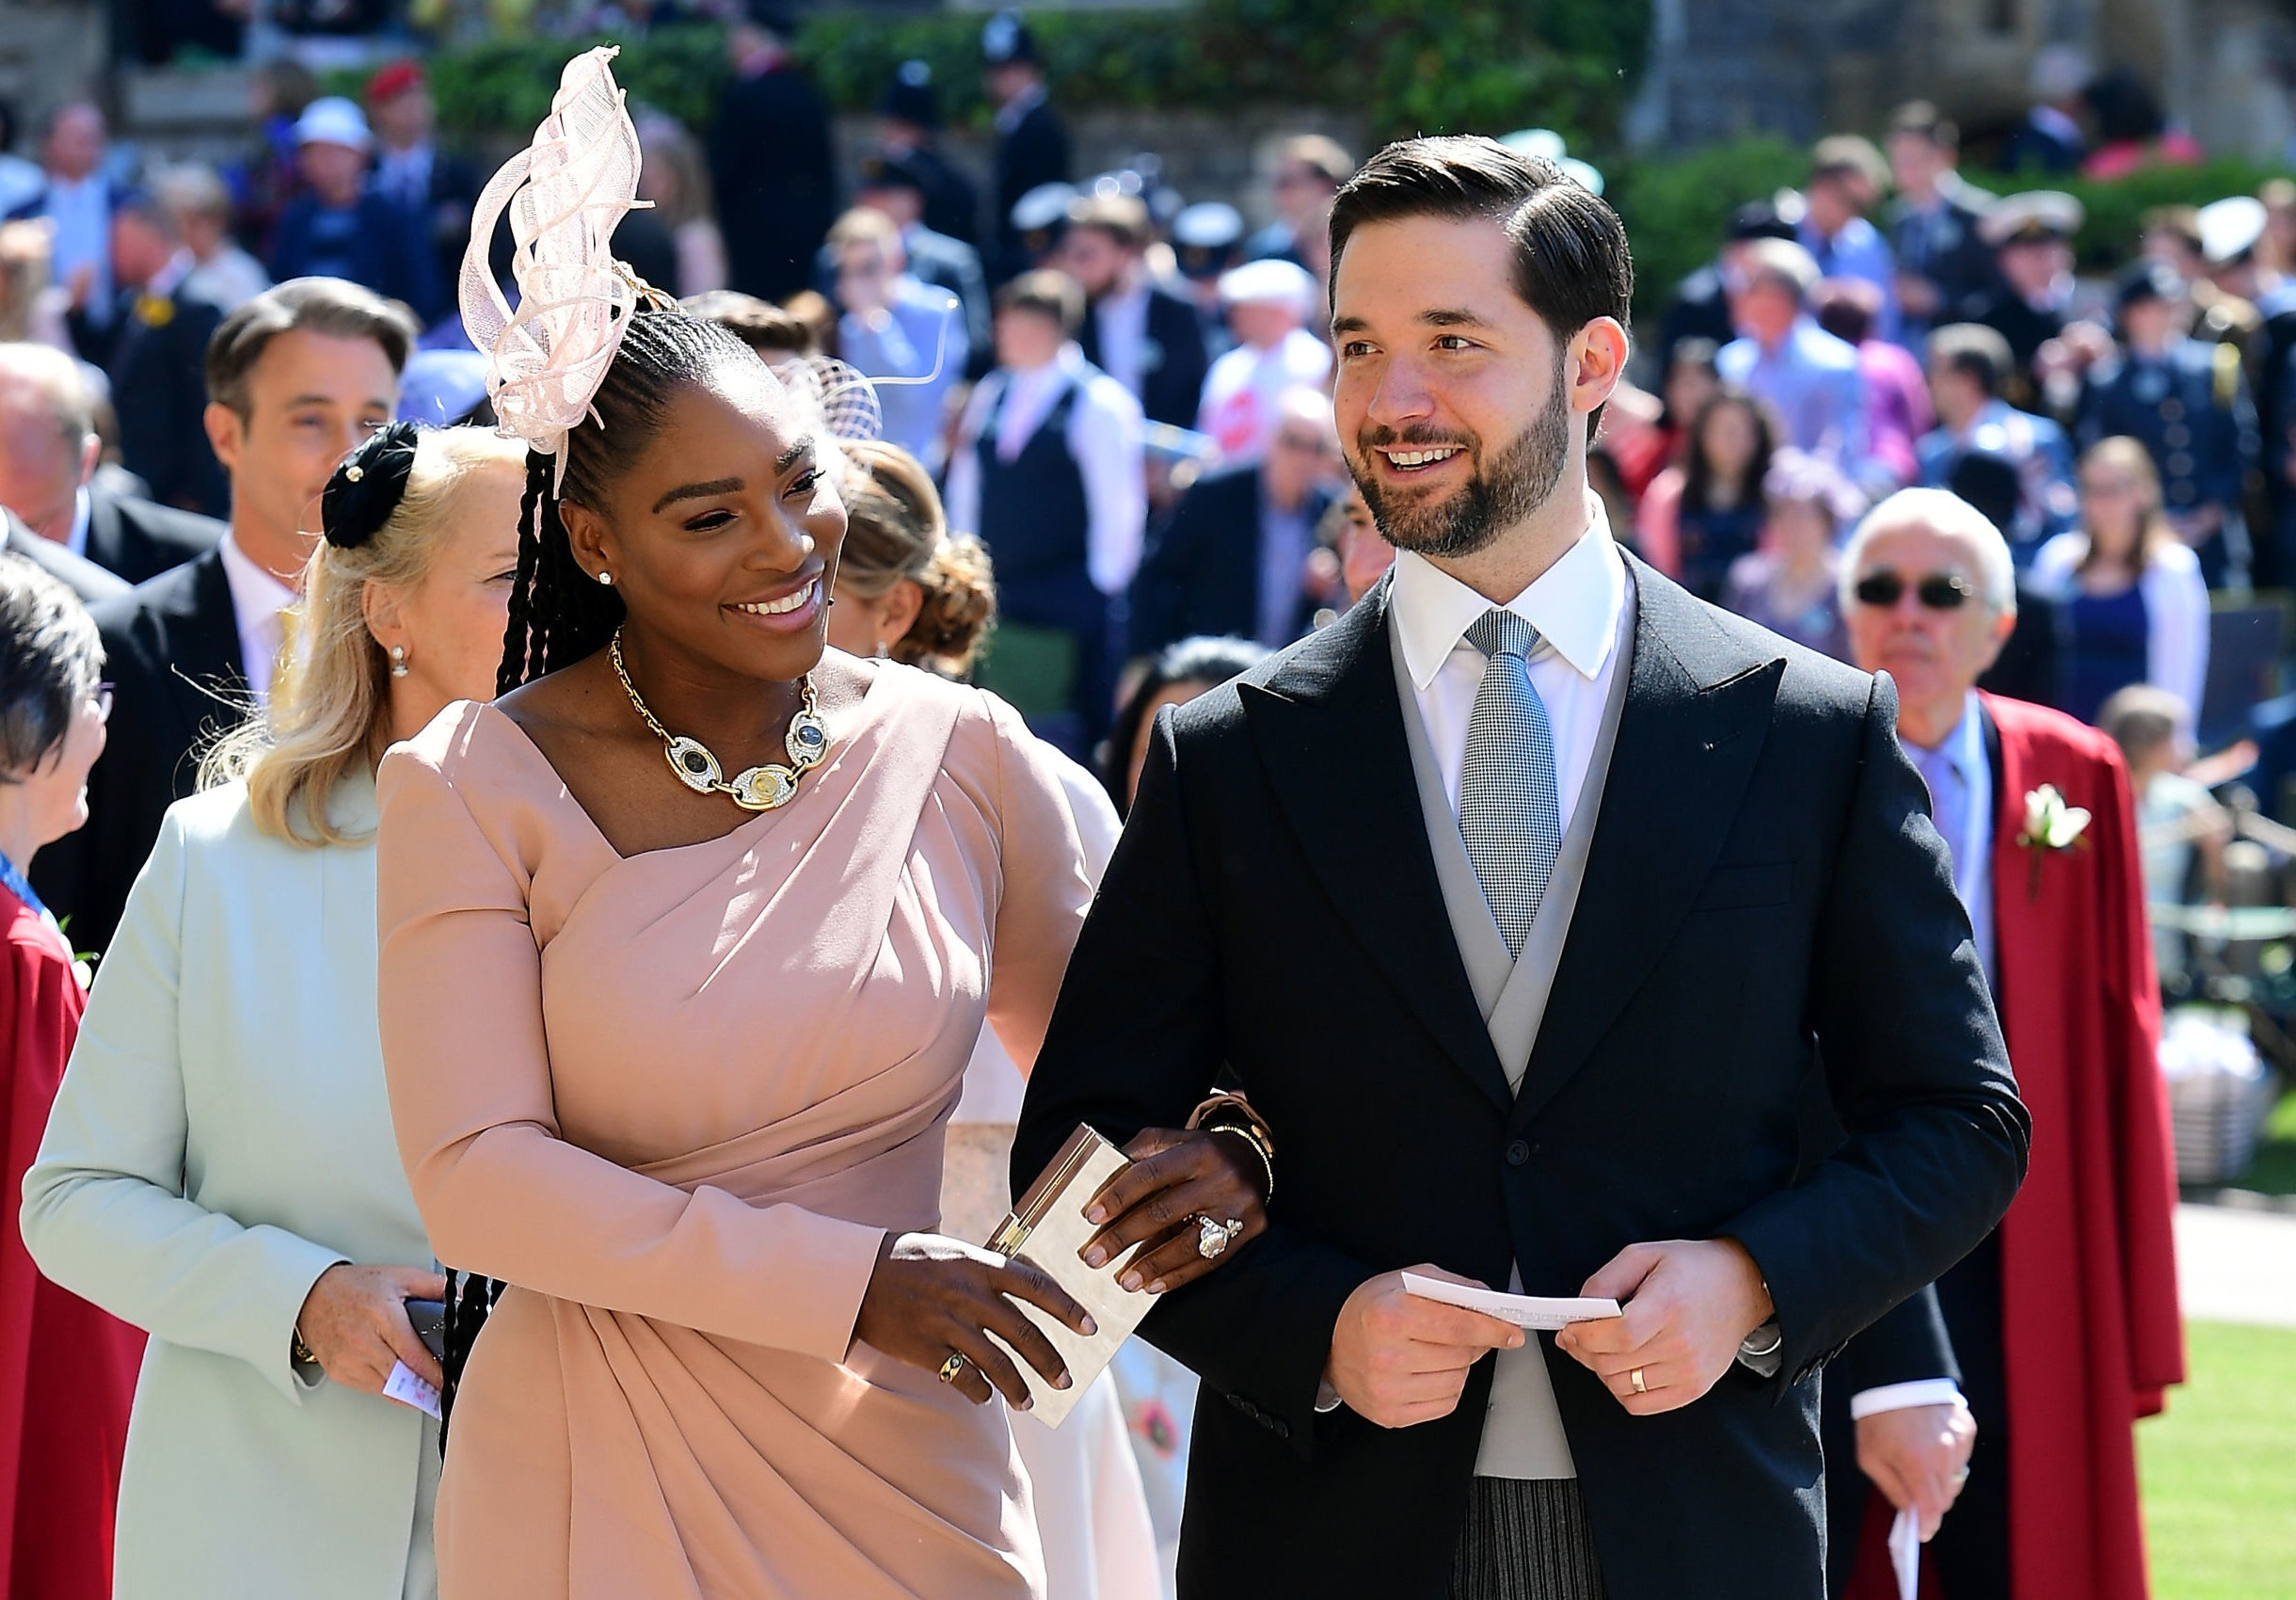 Let Us Count All The Ways That Serena Williams' Marital Bliss Pisses Some White Women Off